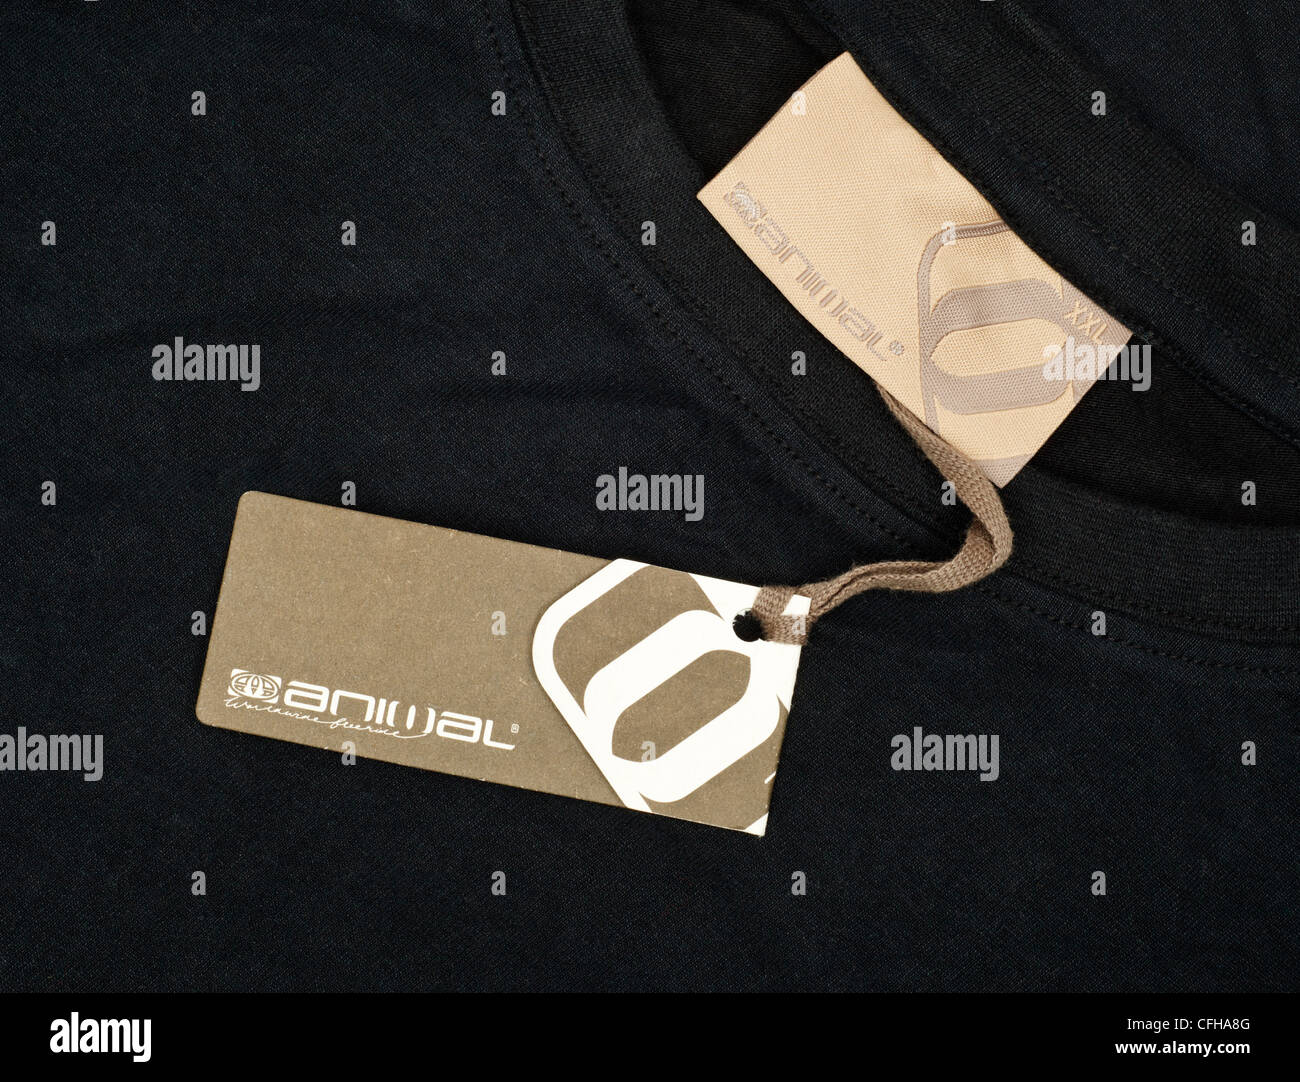 Animal clothing brand logo and label - Stock Image